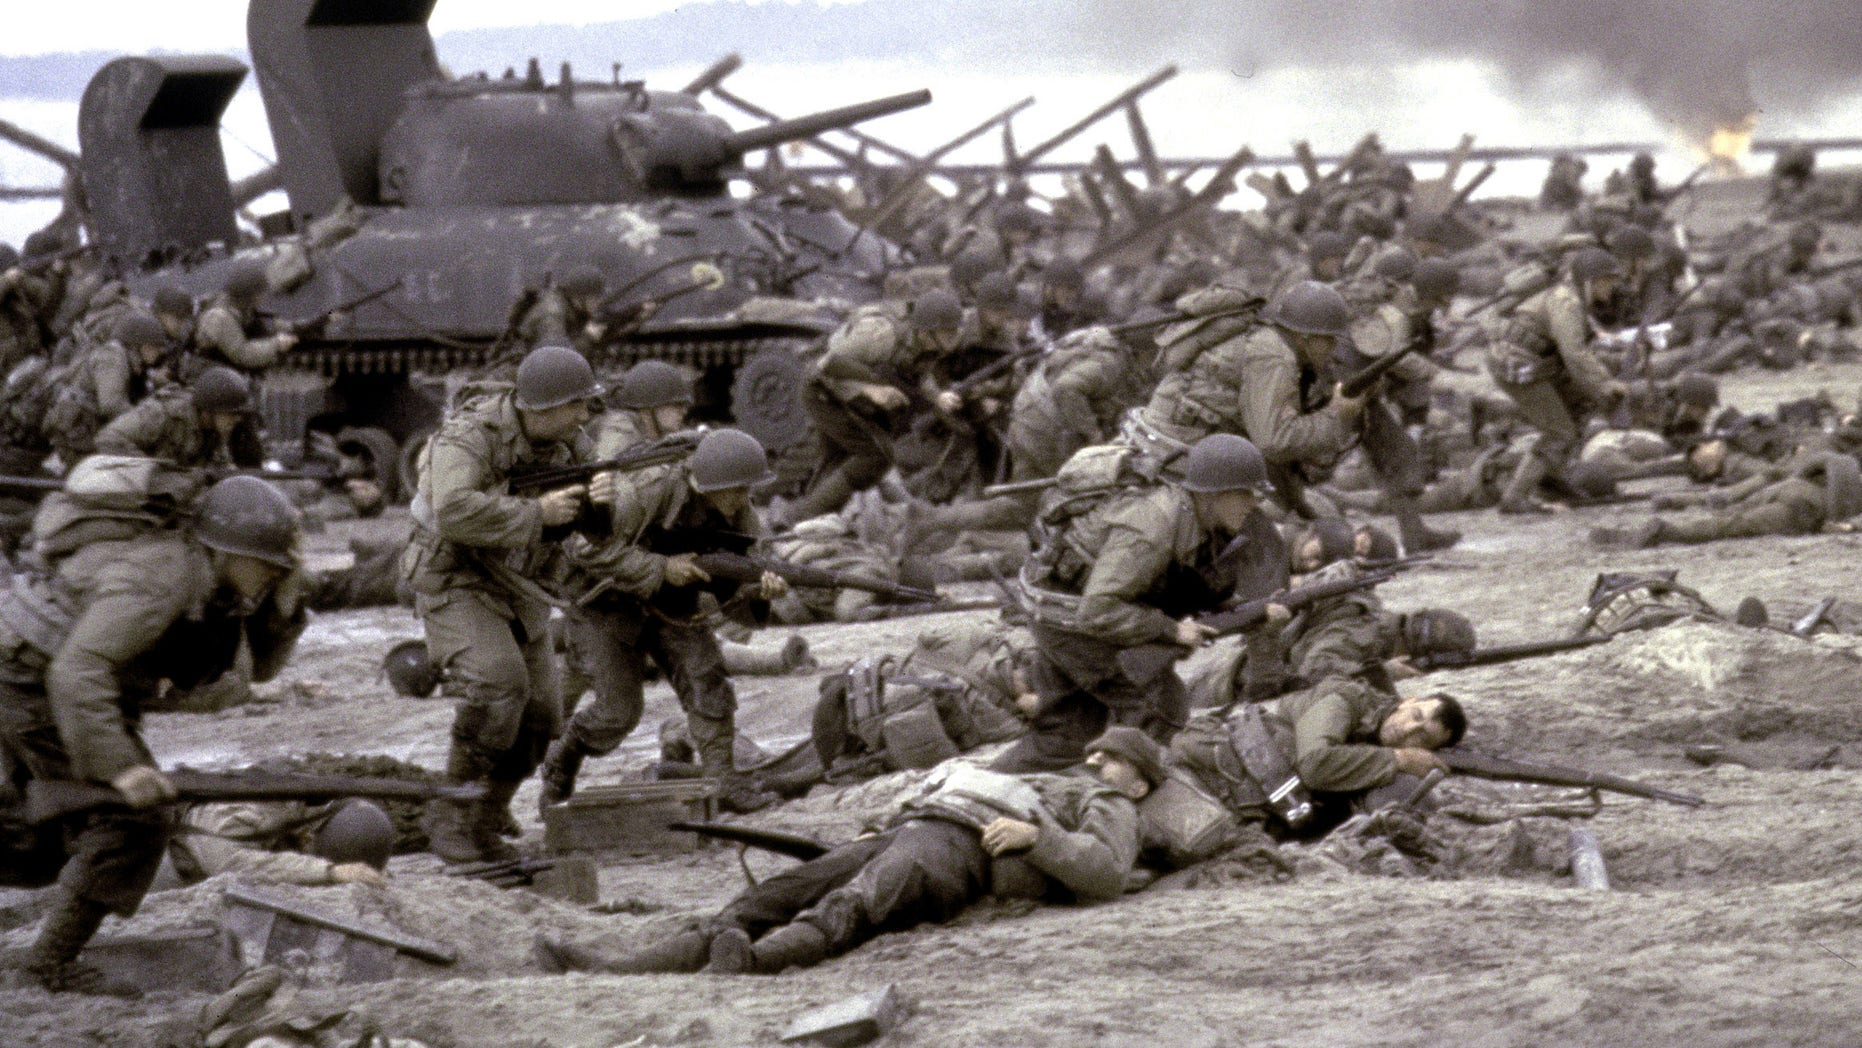 """FILE - This photo released by DreamWorks shows a scene form  the 1998 film """"Saving Private Ryan.""""  Saving Private Ryan and Ferris Buellers Day Off are among 25 movies being inducted this year into the National Film Registry for long-term preservation, the Library of Congress announced Wednesday Dec. 17, 2014. (AP Photo/DreamWorks, David James, File)"""